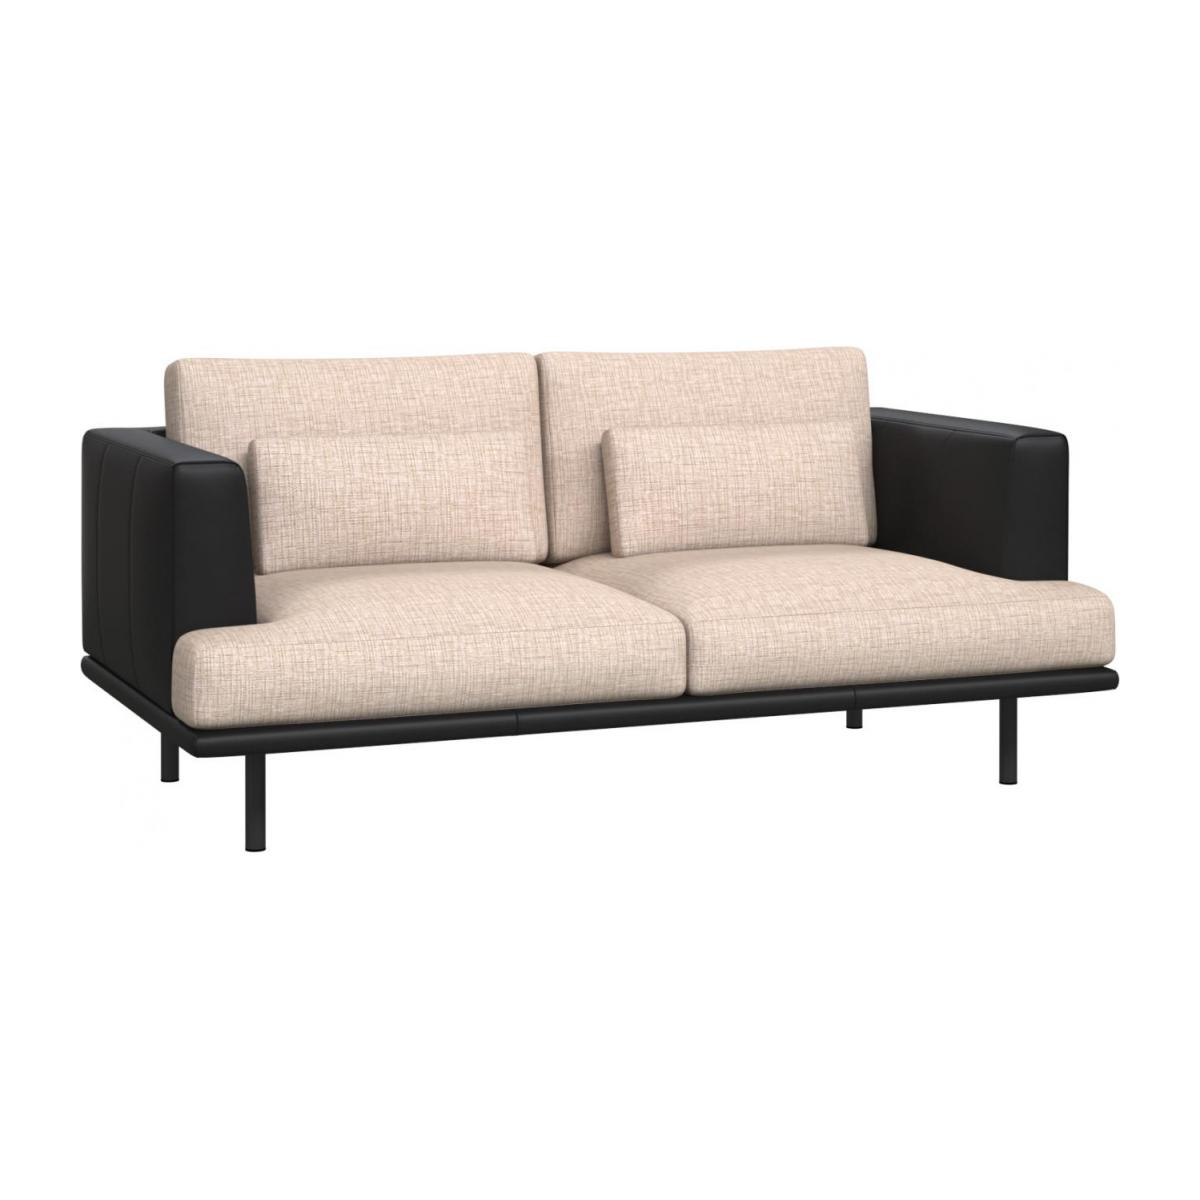 2 seater sofa in Ancio fabric, nature with base and armrests in black leather n°1